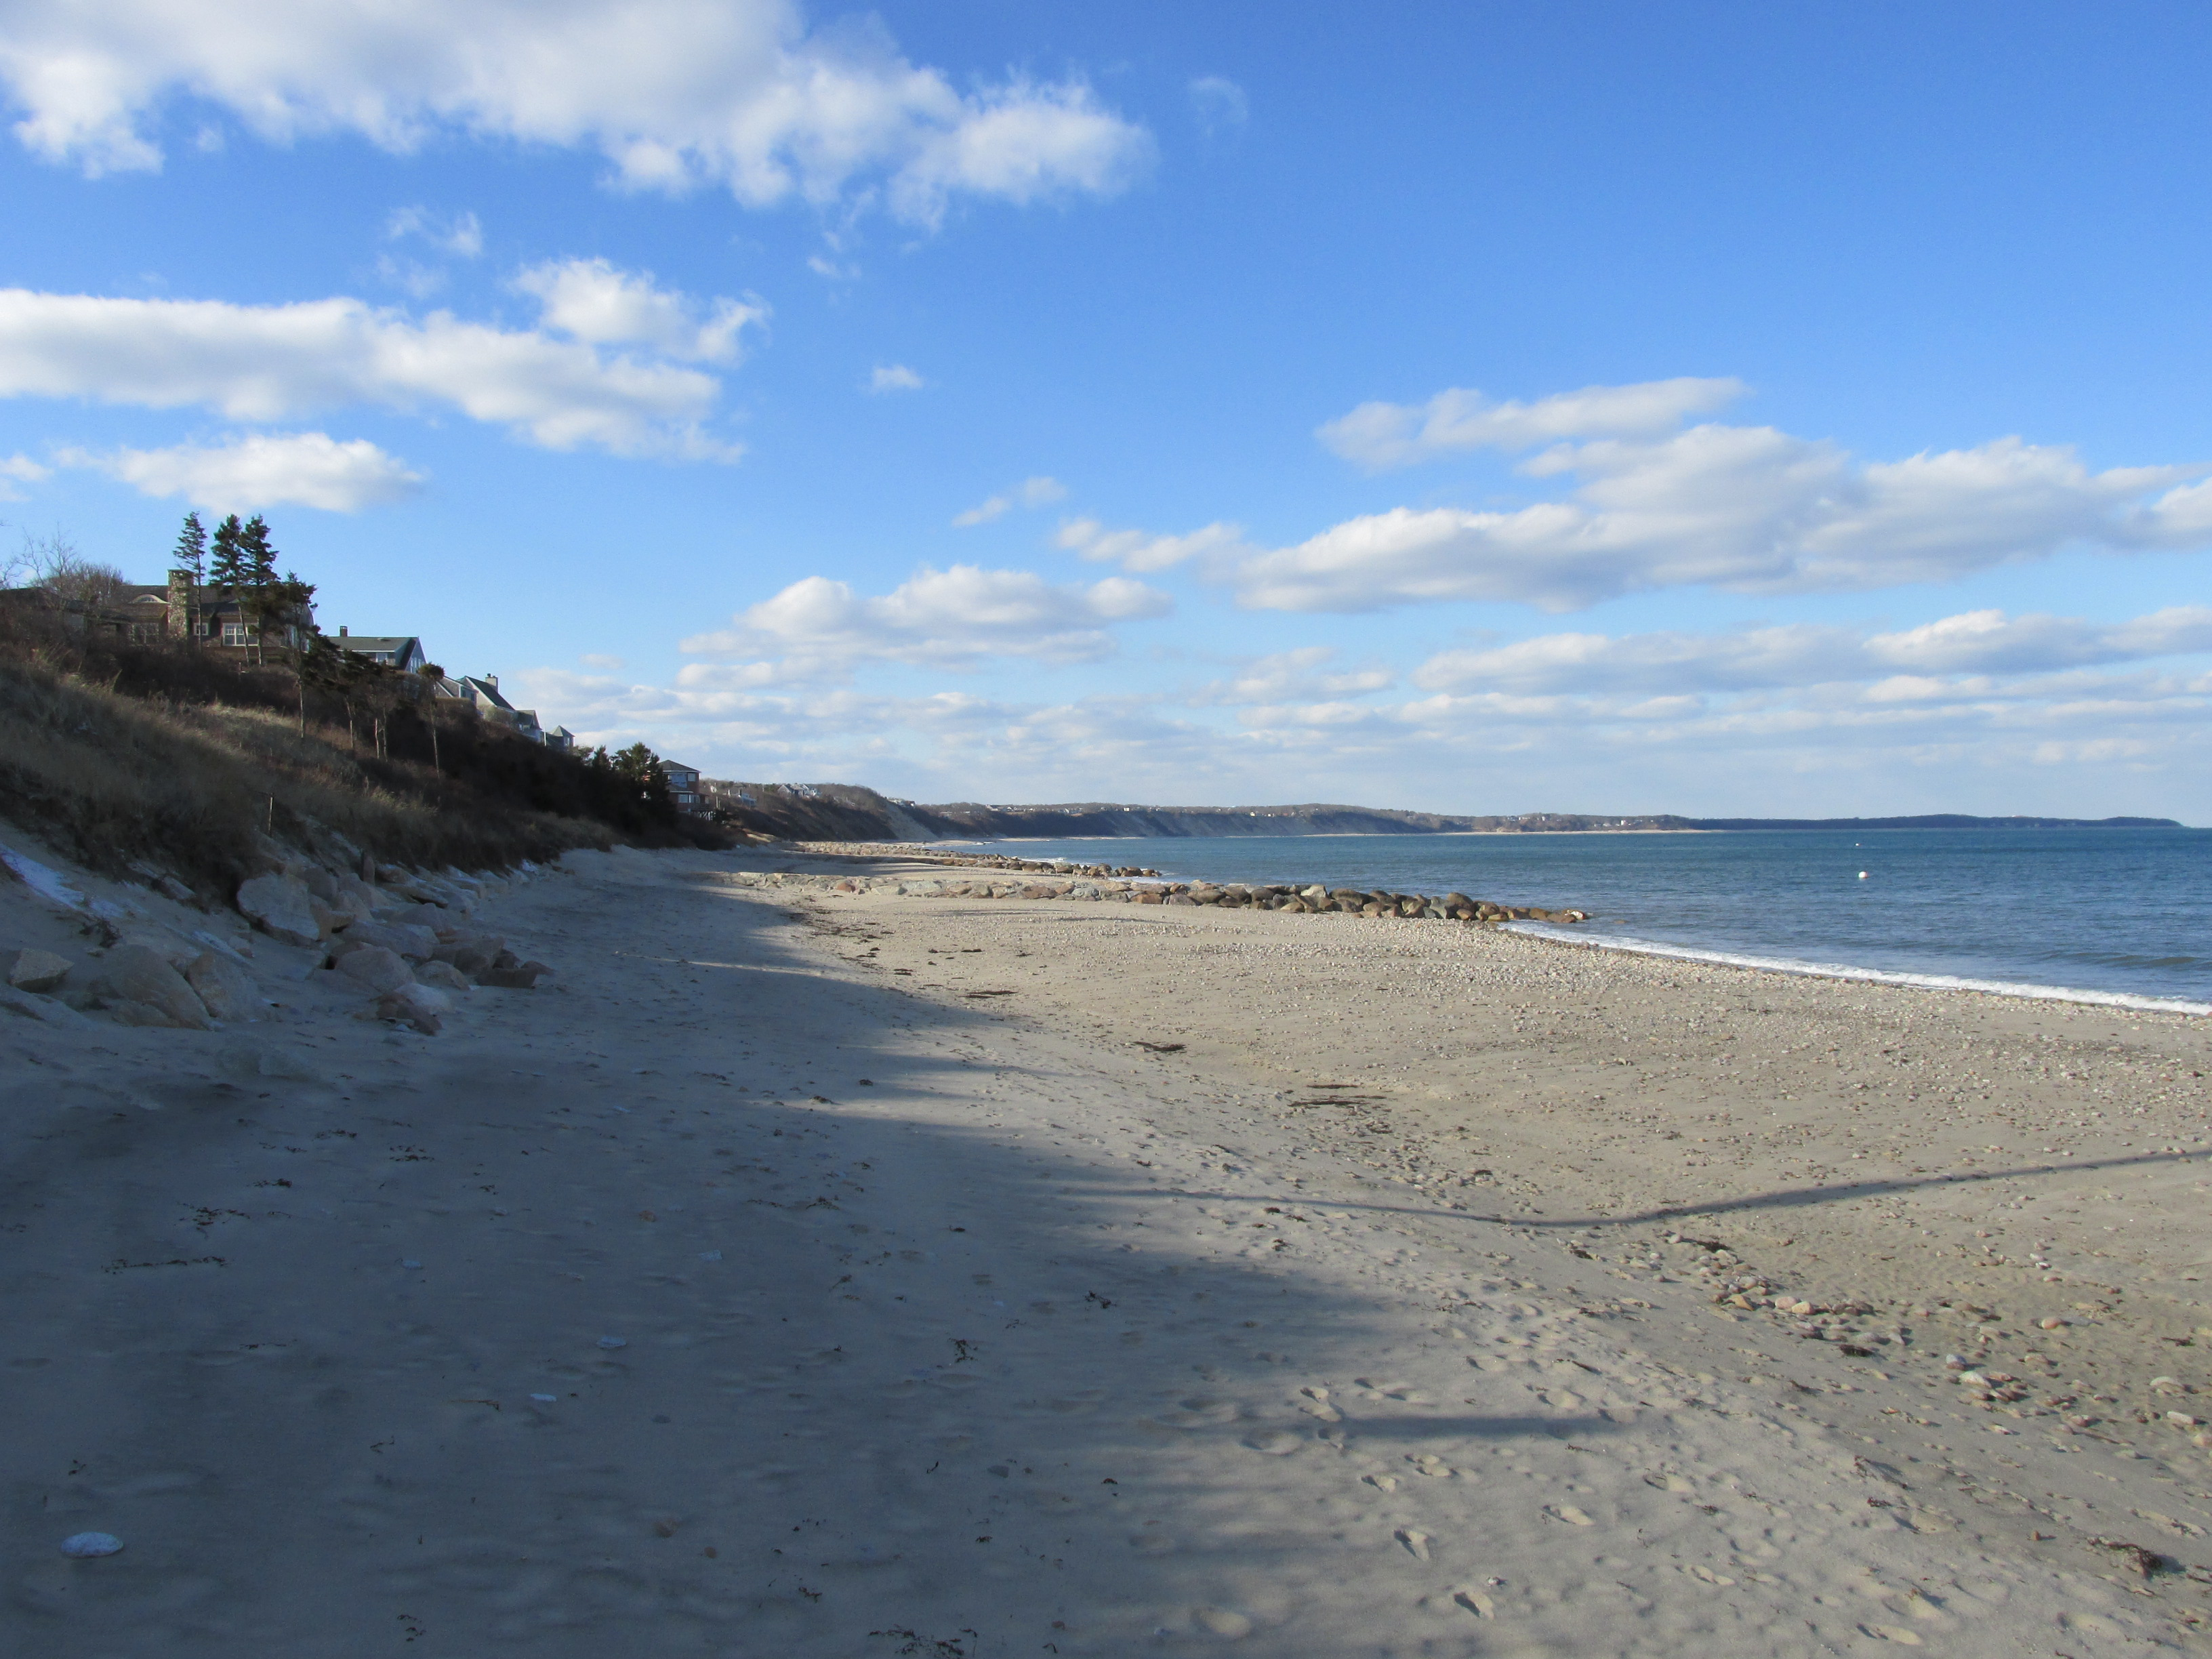 Cape Cod State Park Beaches